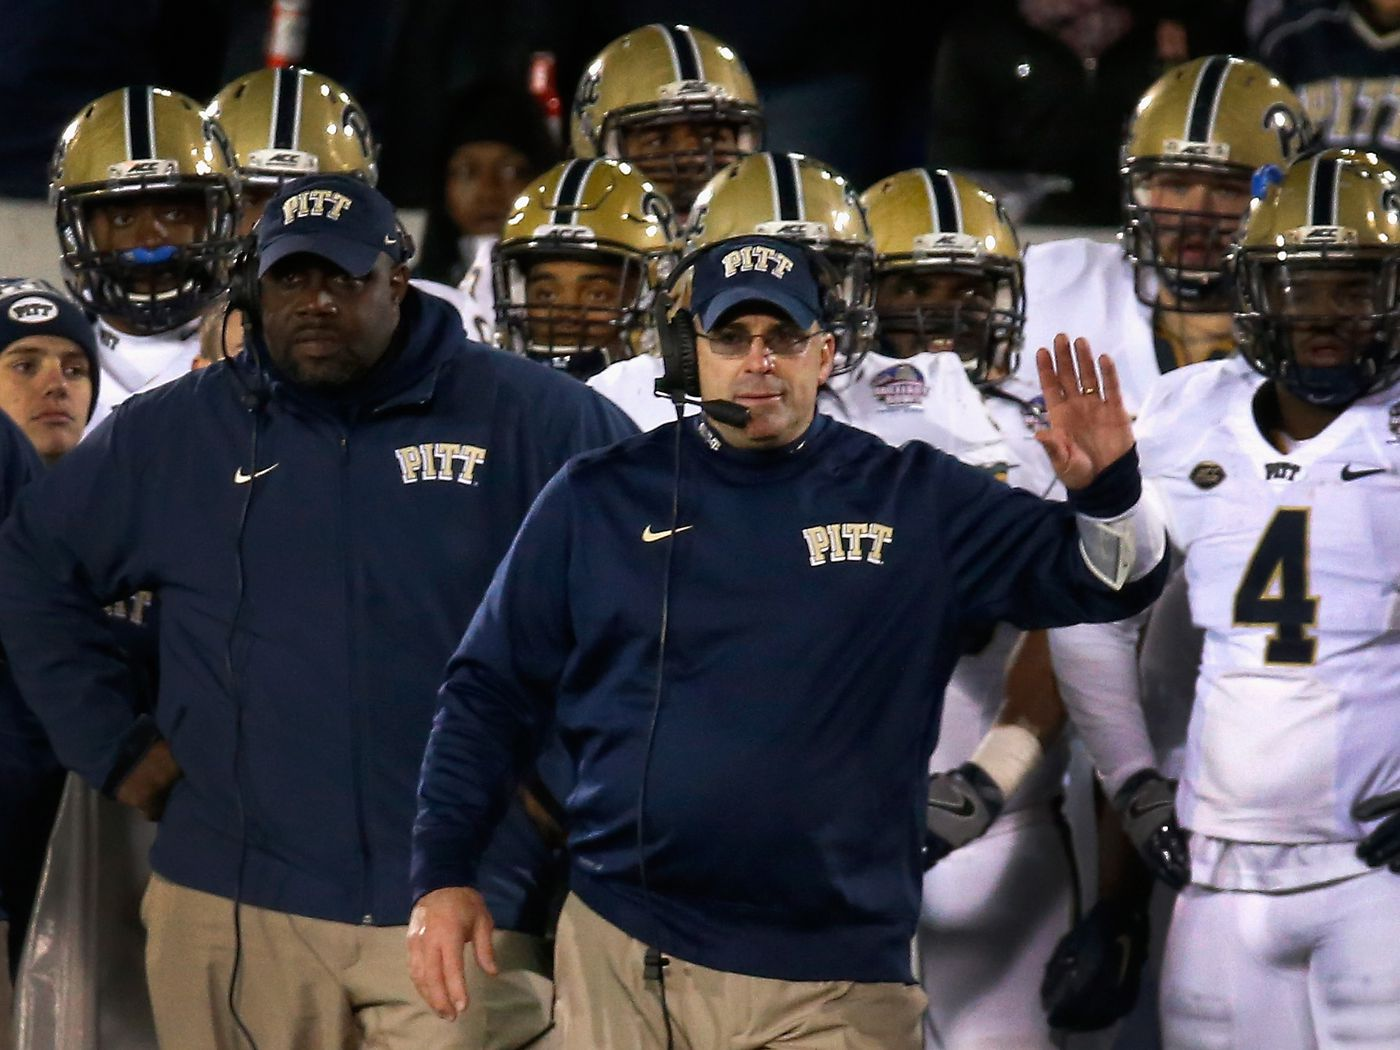 UNC Football Opponent Preview: What to make of Pitt? - Tar Heel Blog